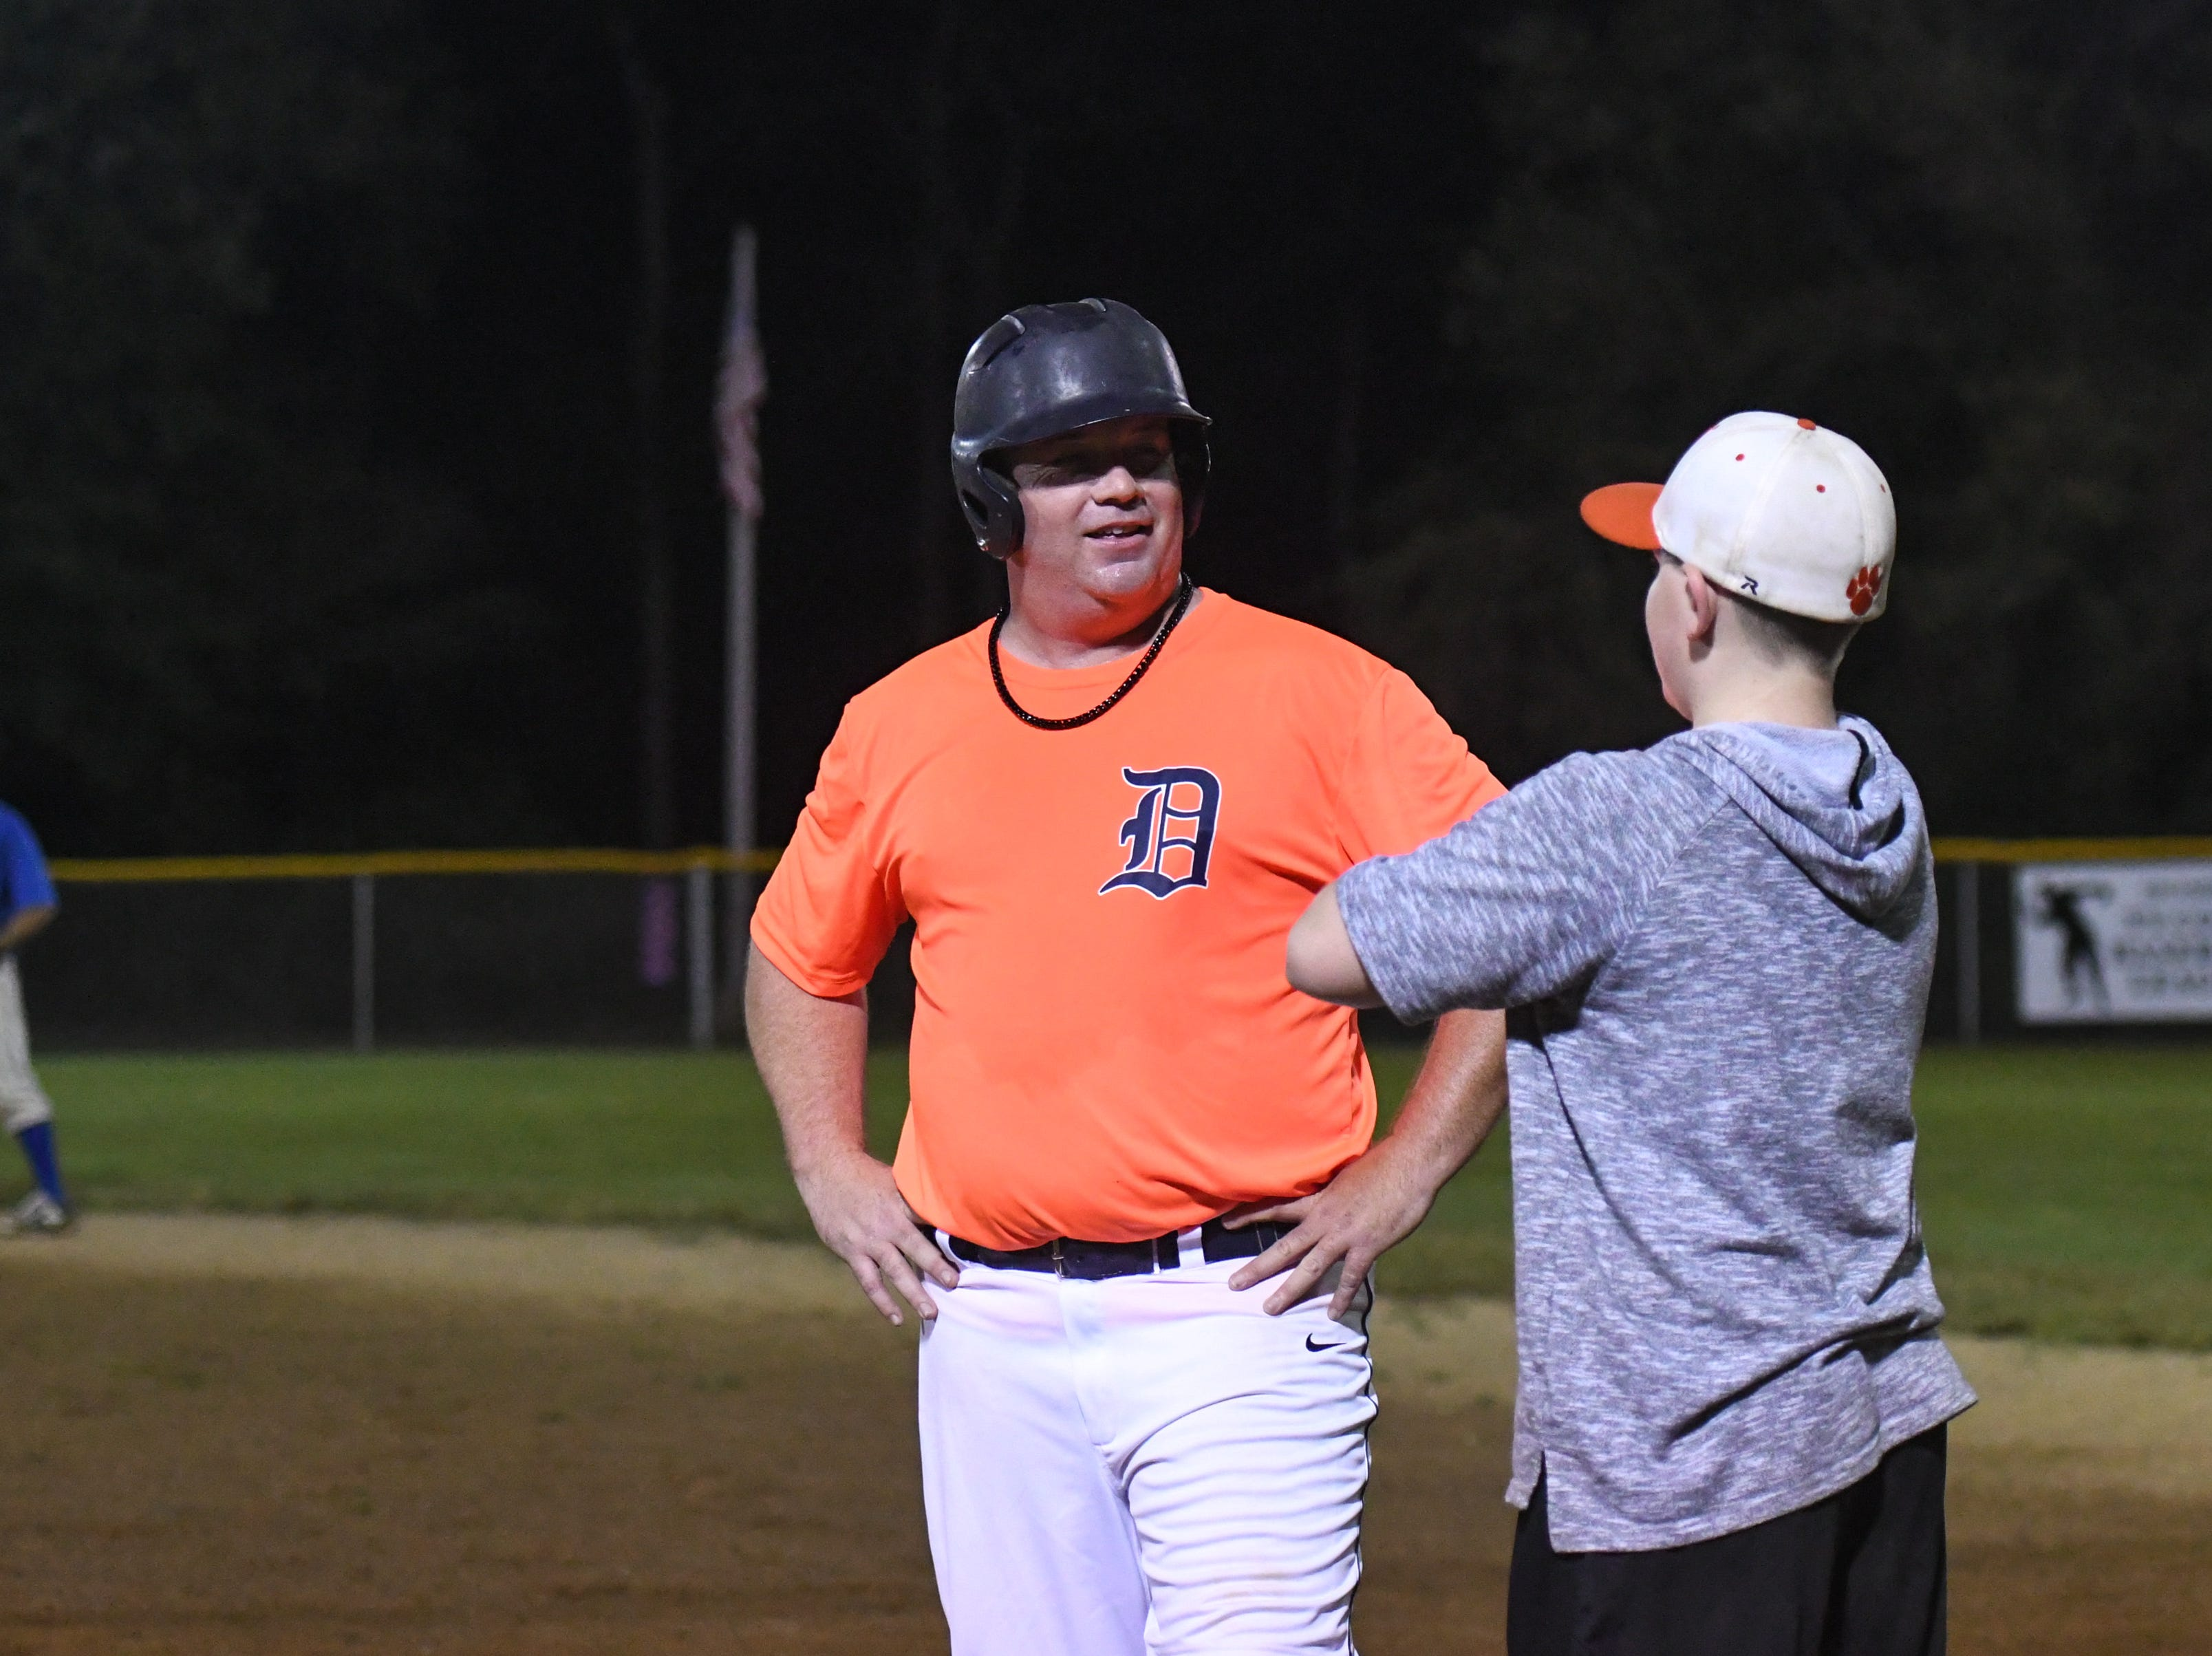 Jerry Pierson gets advice from son and first base coach Tucker Pierson during a game in the new Ty Cobb Senior Baseball League in Salisbury on Tuesday, Oct 9, 2018.